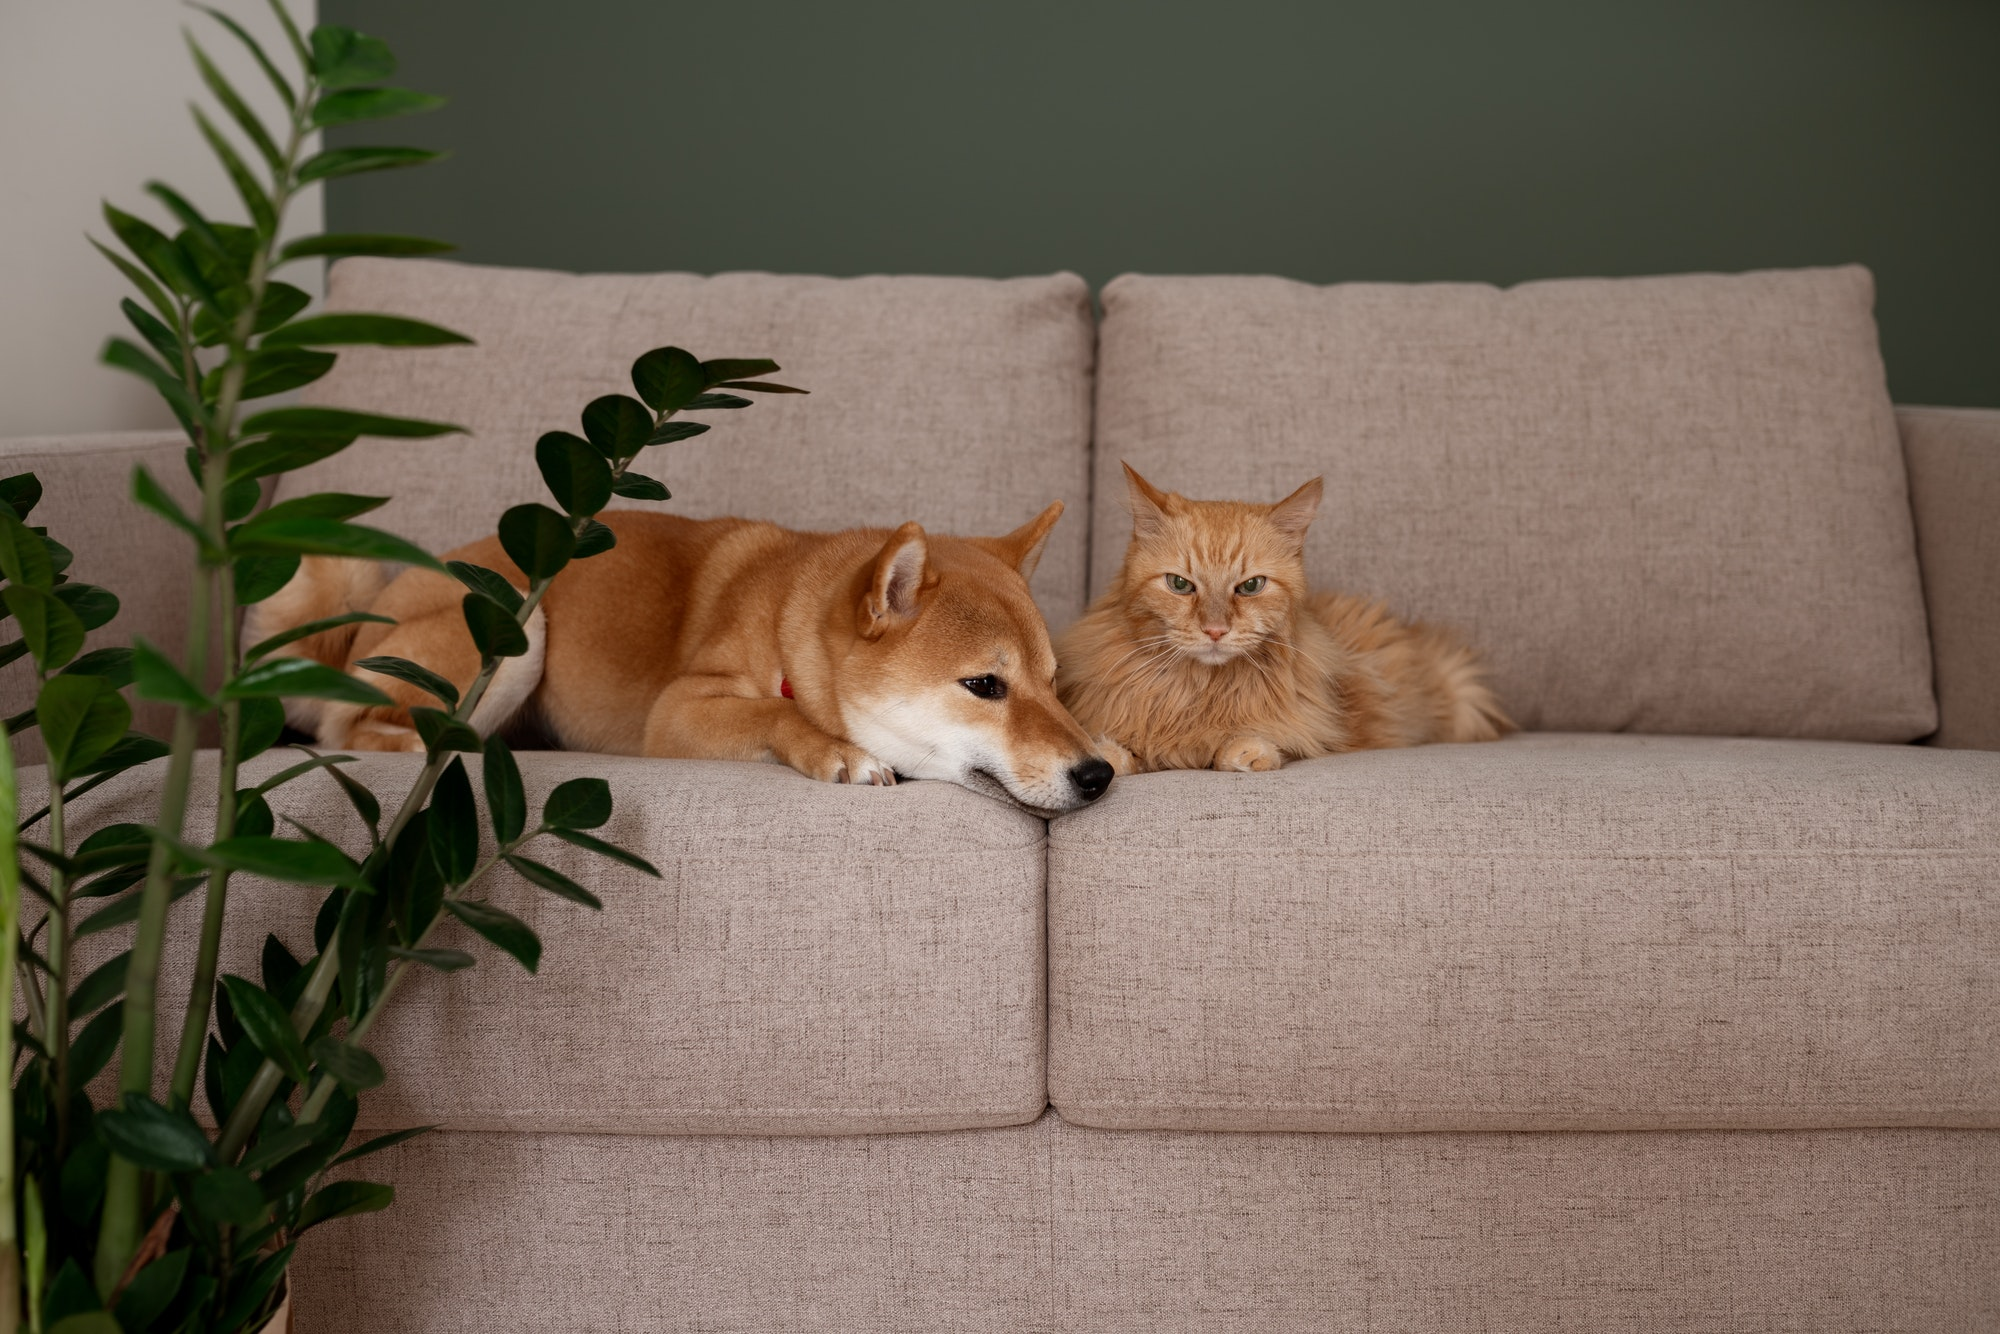 Red Shiba inu dog and red cat napping on gray couch in modern room with green wall. Cozy home